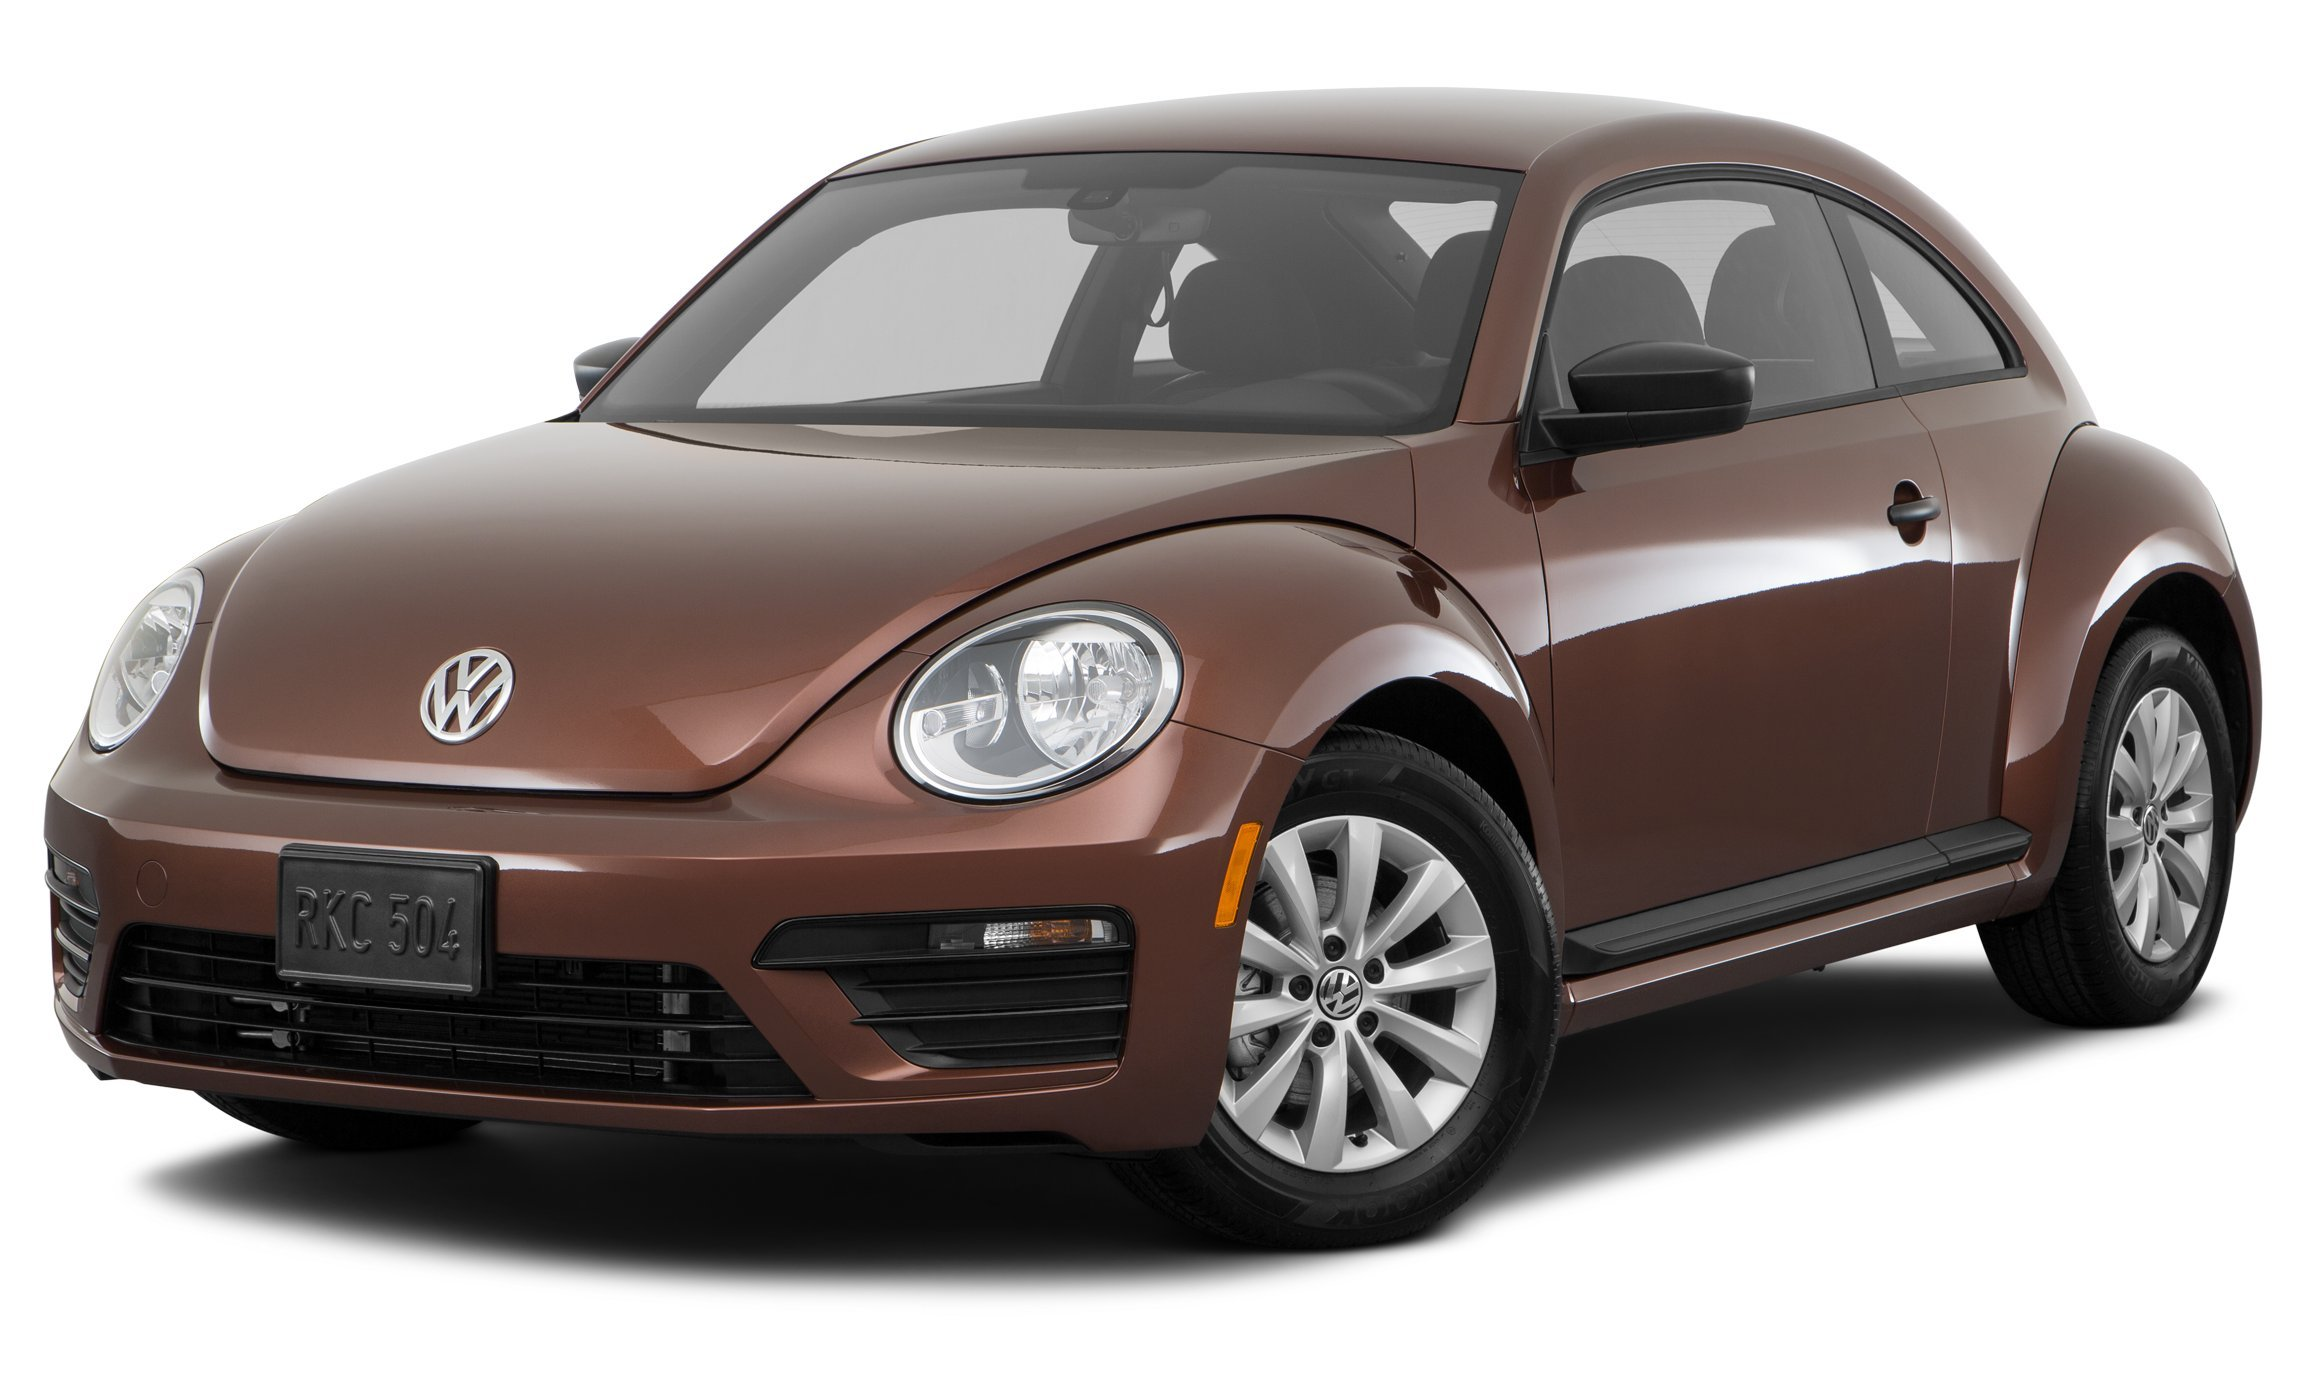 2017 volkswagen beetle reviews images and specs vehicles. Black Bedroom Furniture Sets. Home Design Ideas